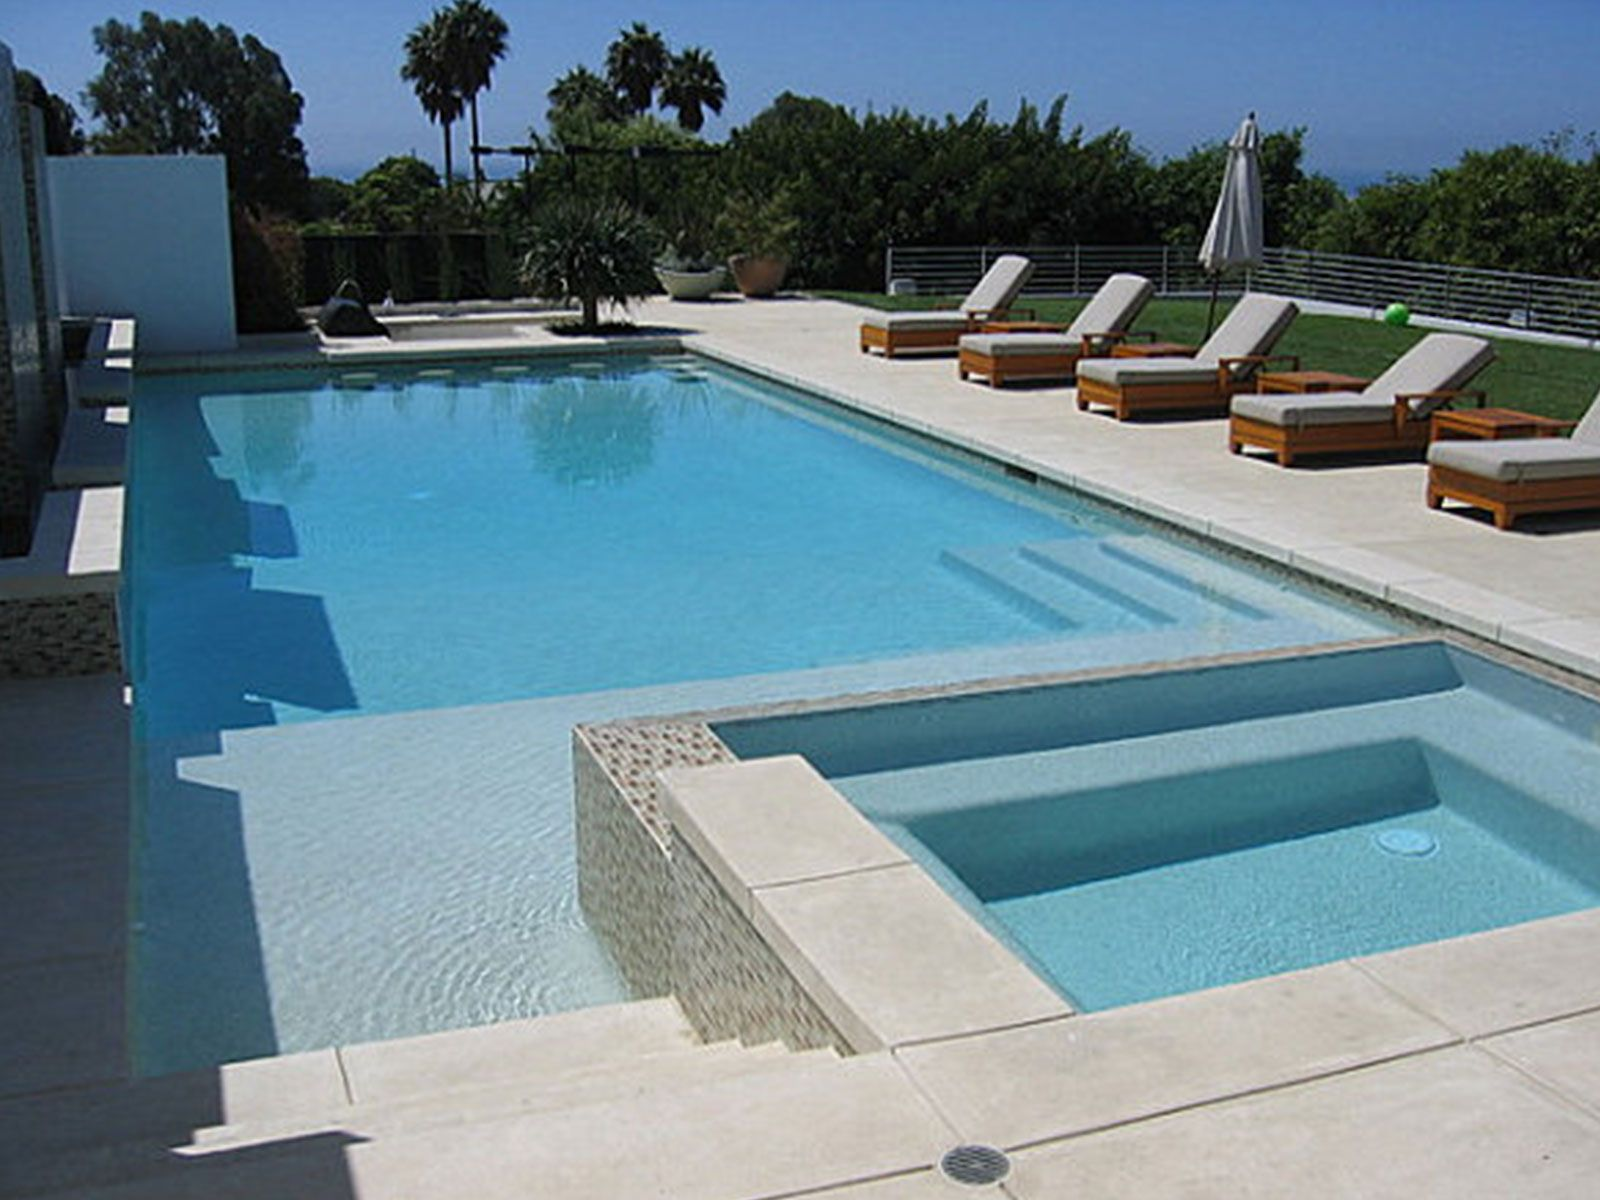 Simple swimming pool design image modern creative swimming modern swimming pools and spas pool - Pool patio design ...